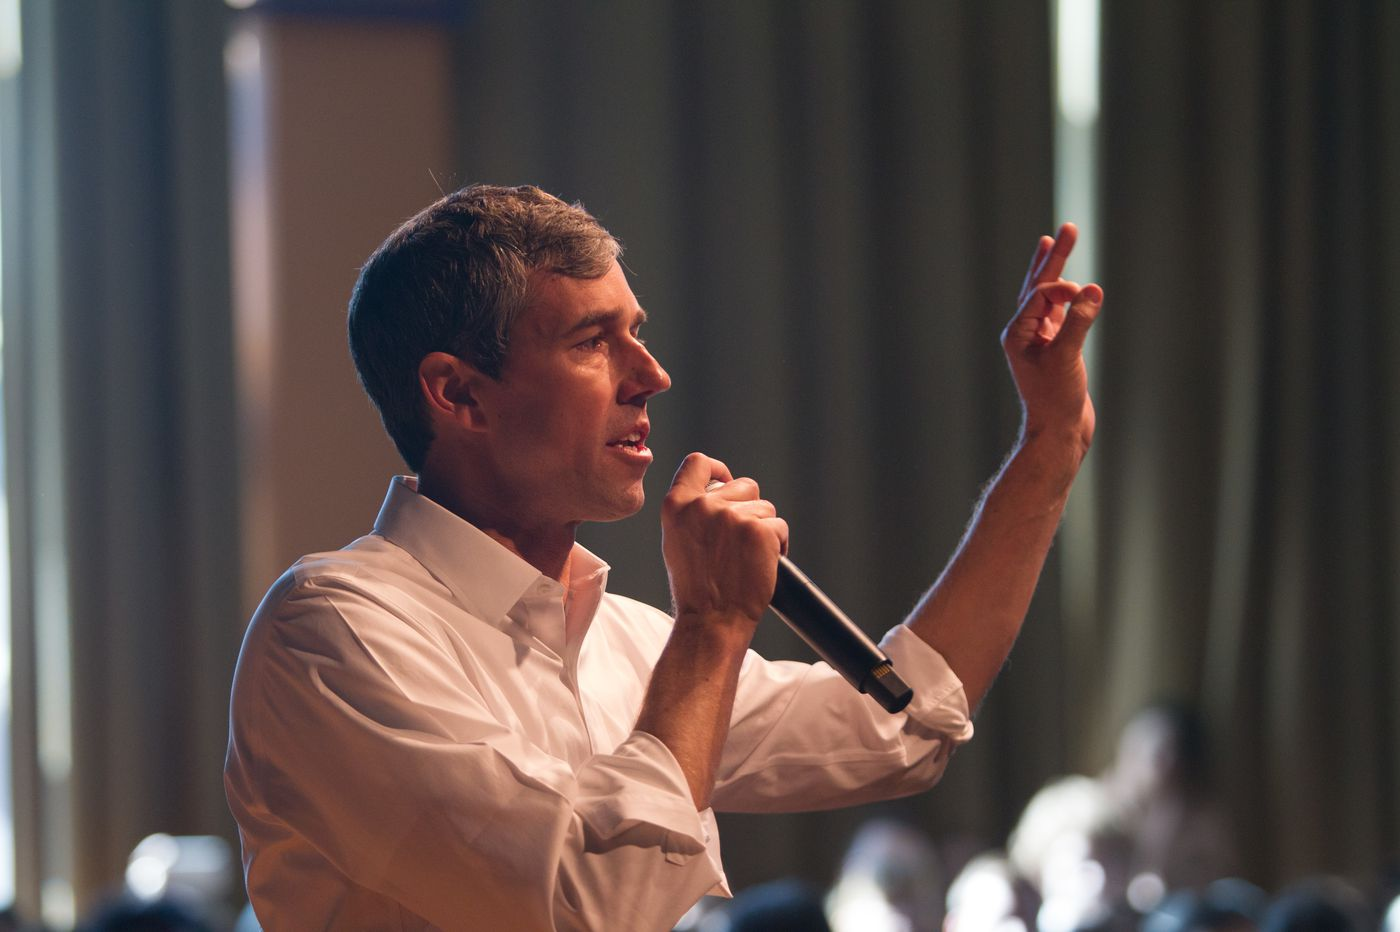 At State College, Beto O'Rourke stirs excitement. But some Democrats wonder what he would do.